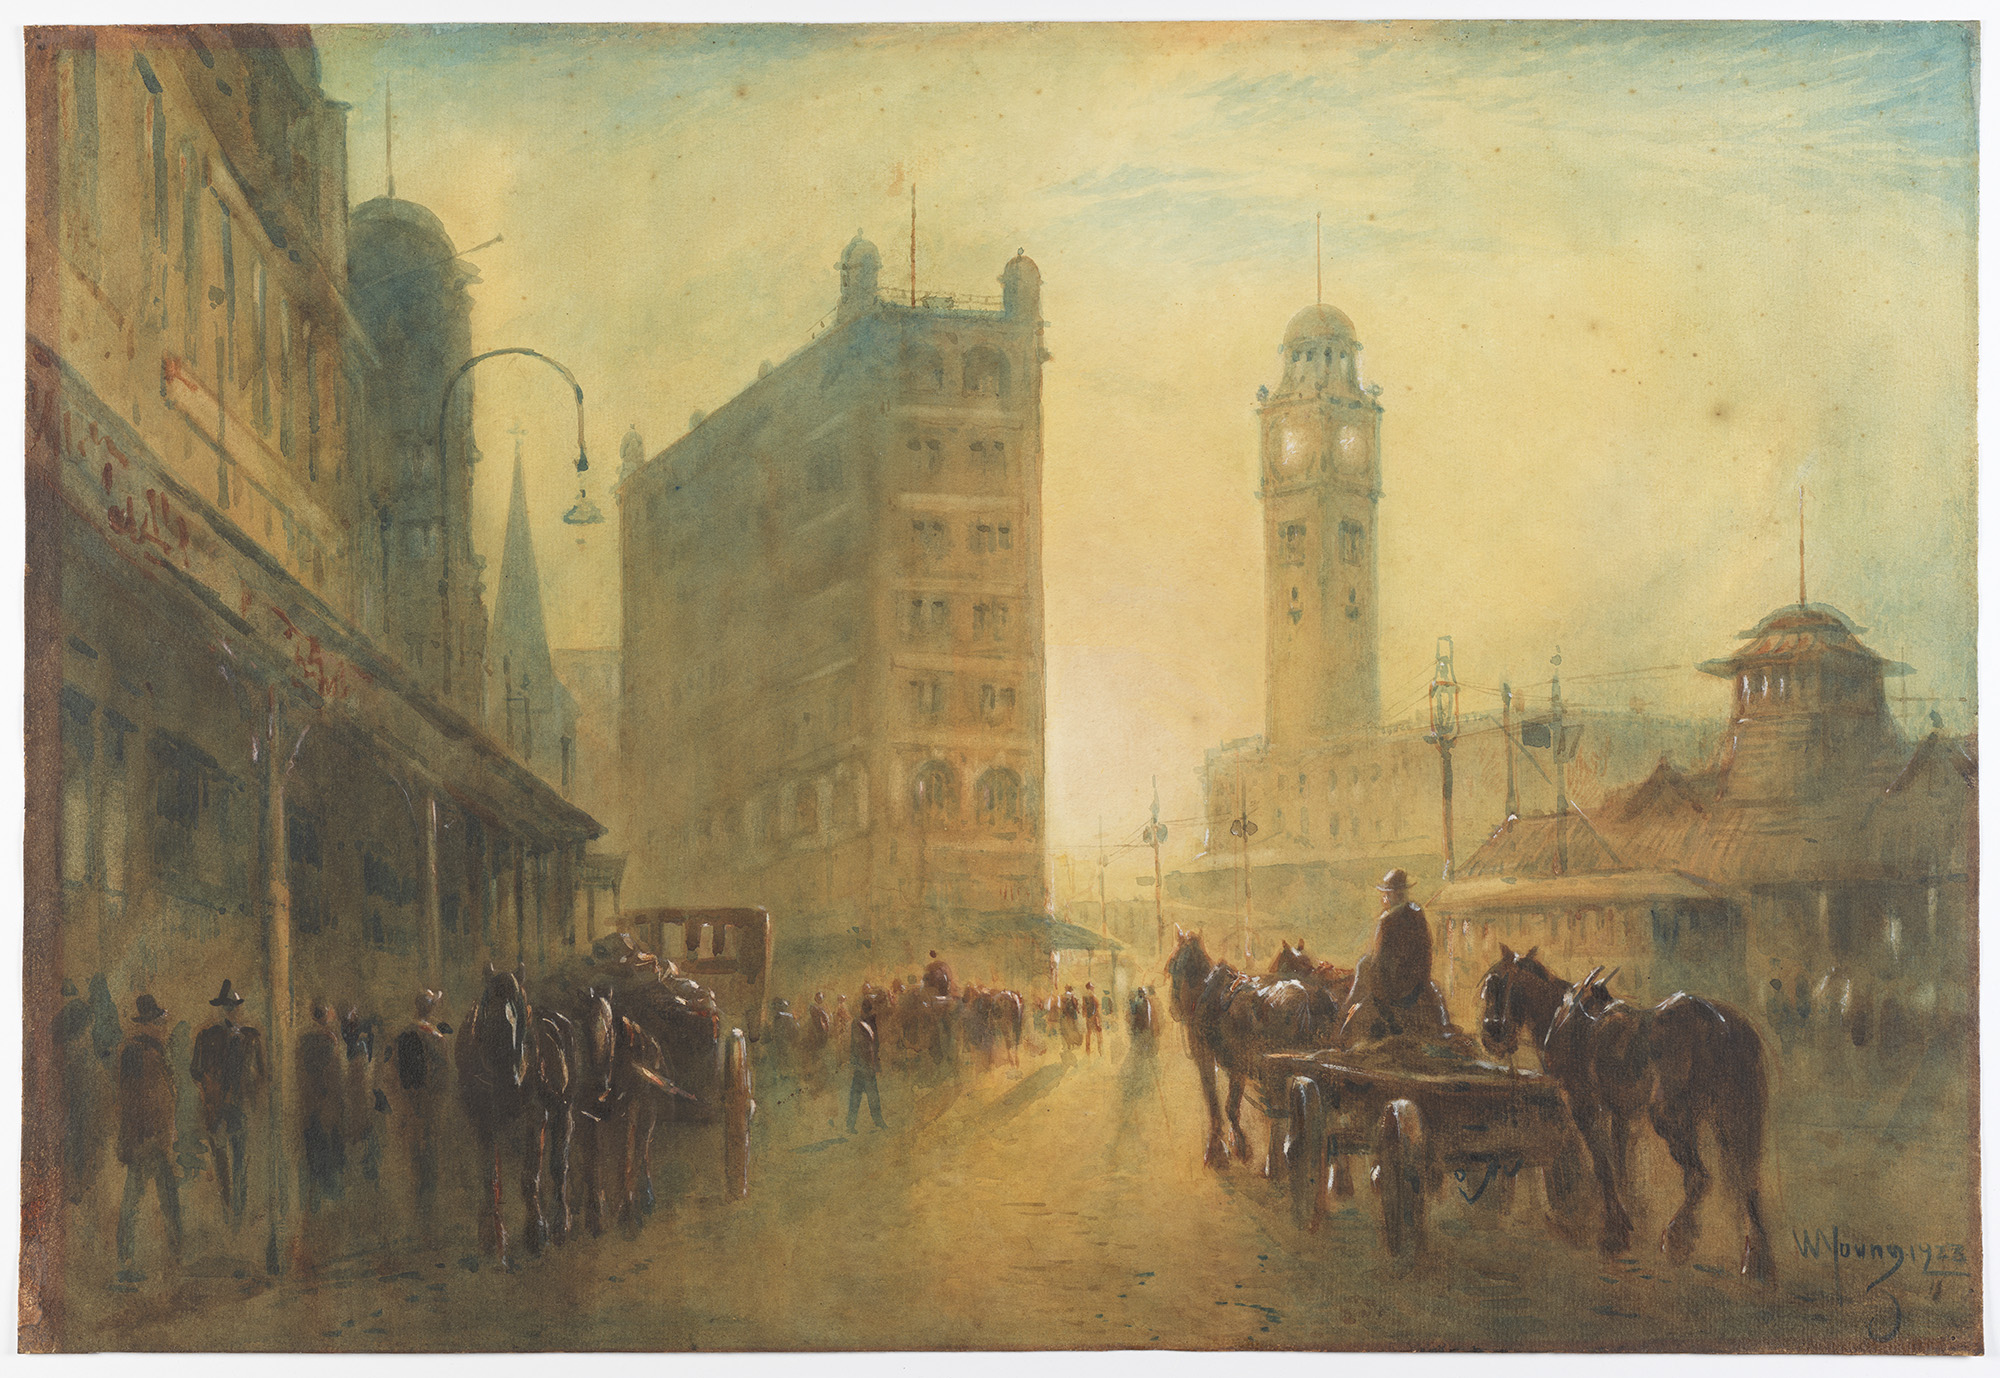 A watercolour painting of Railway Square - the clock tower can be seen in the morning light. A horse and carriage in the foreground.